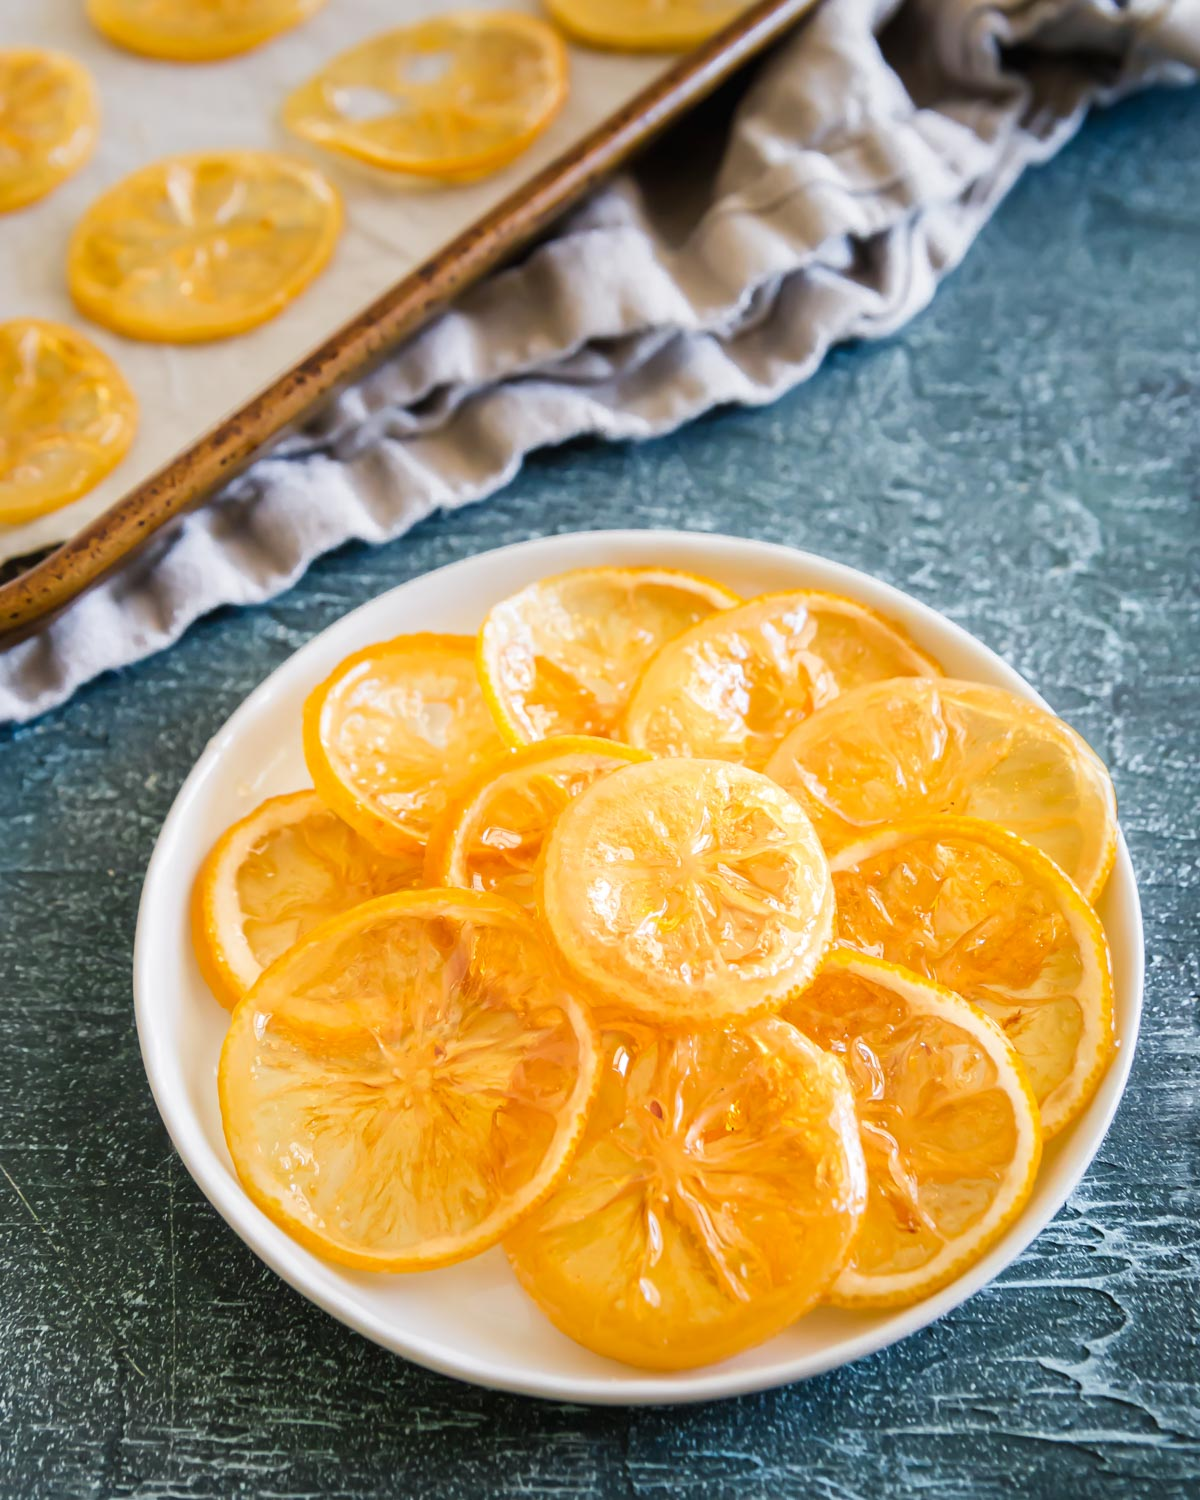 Sweet and tart candied lemon slices are the perfect dessert garnish or addition to festive baking recipes.